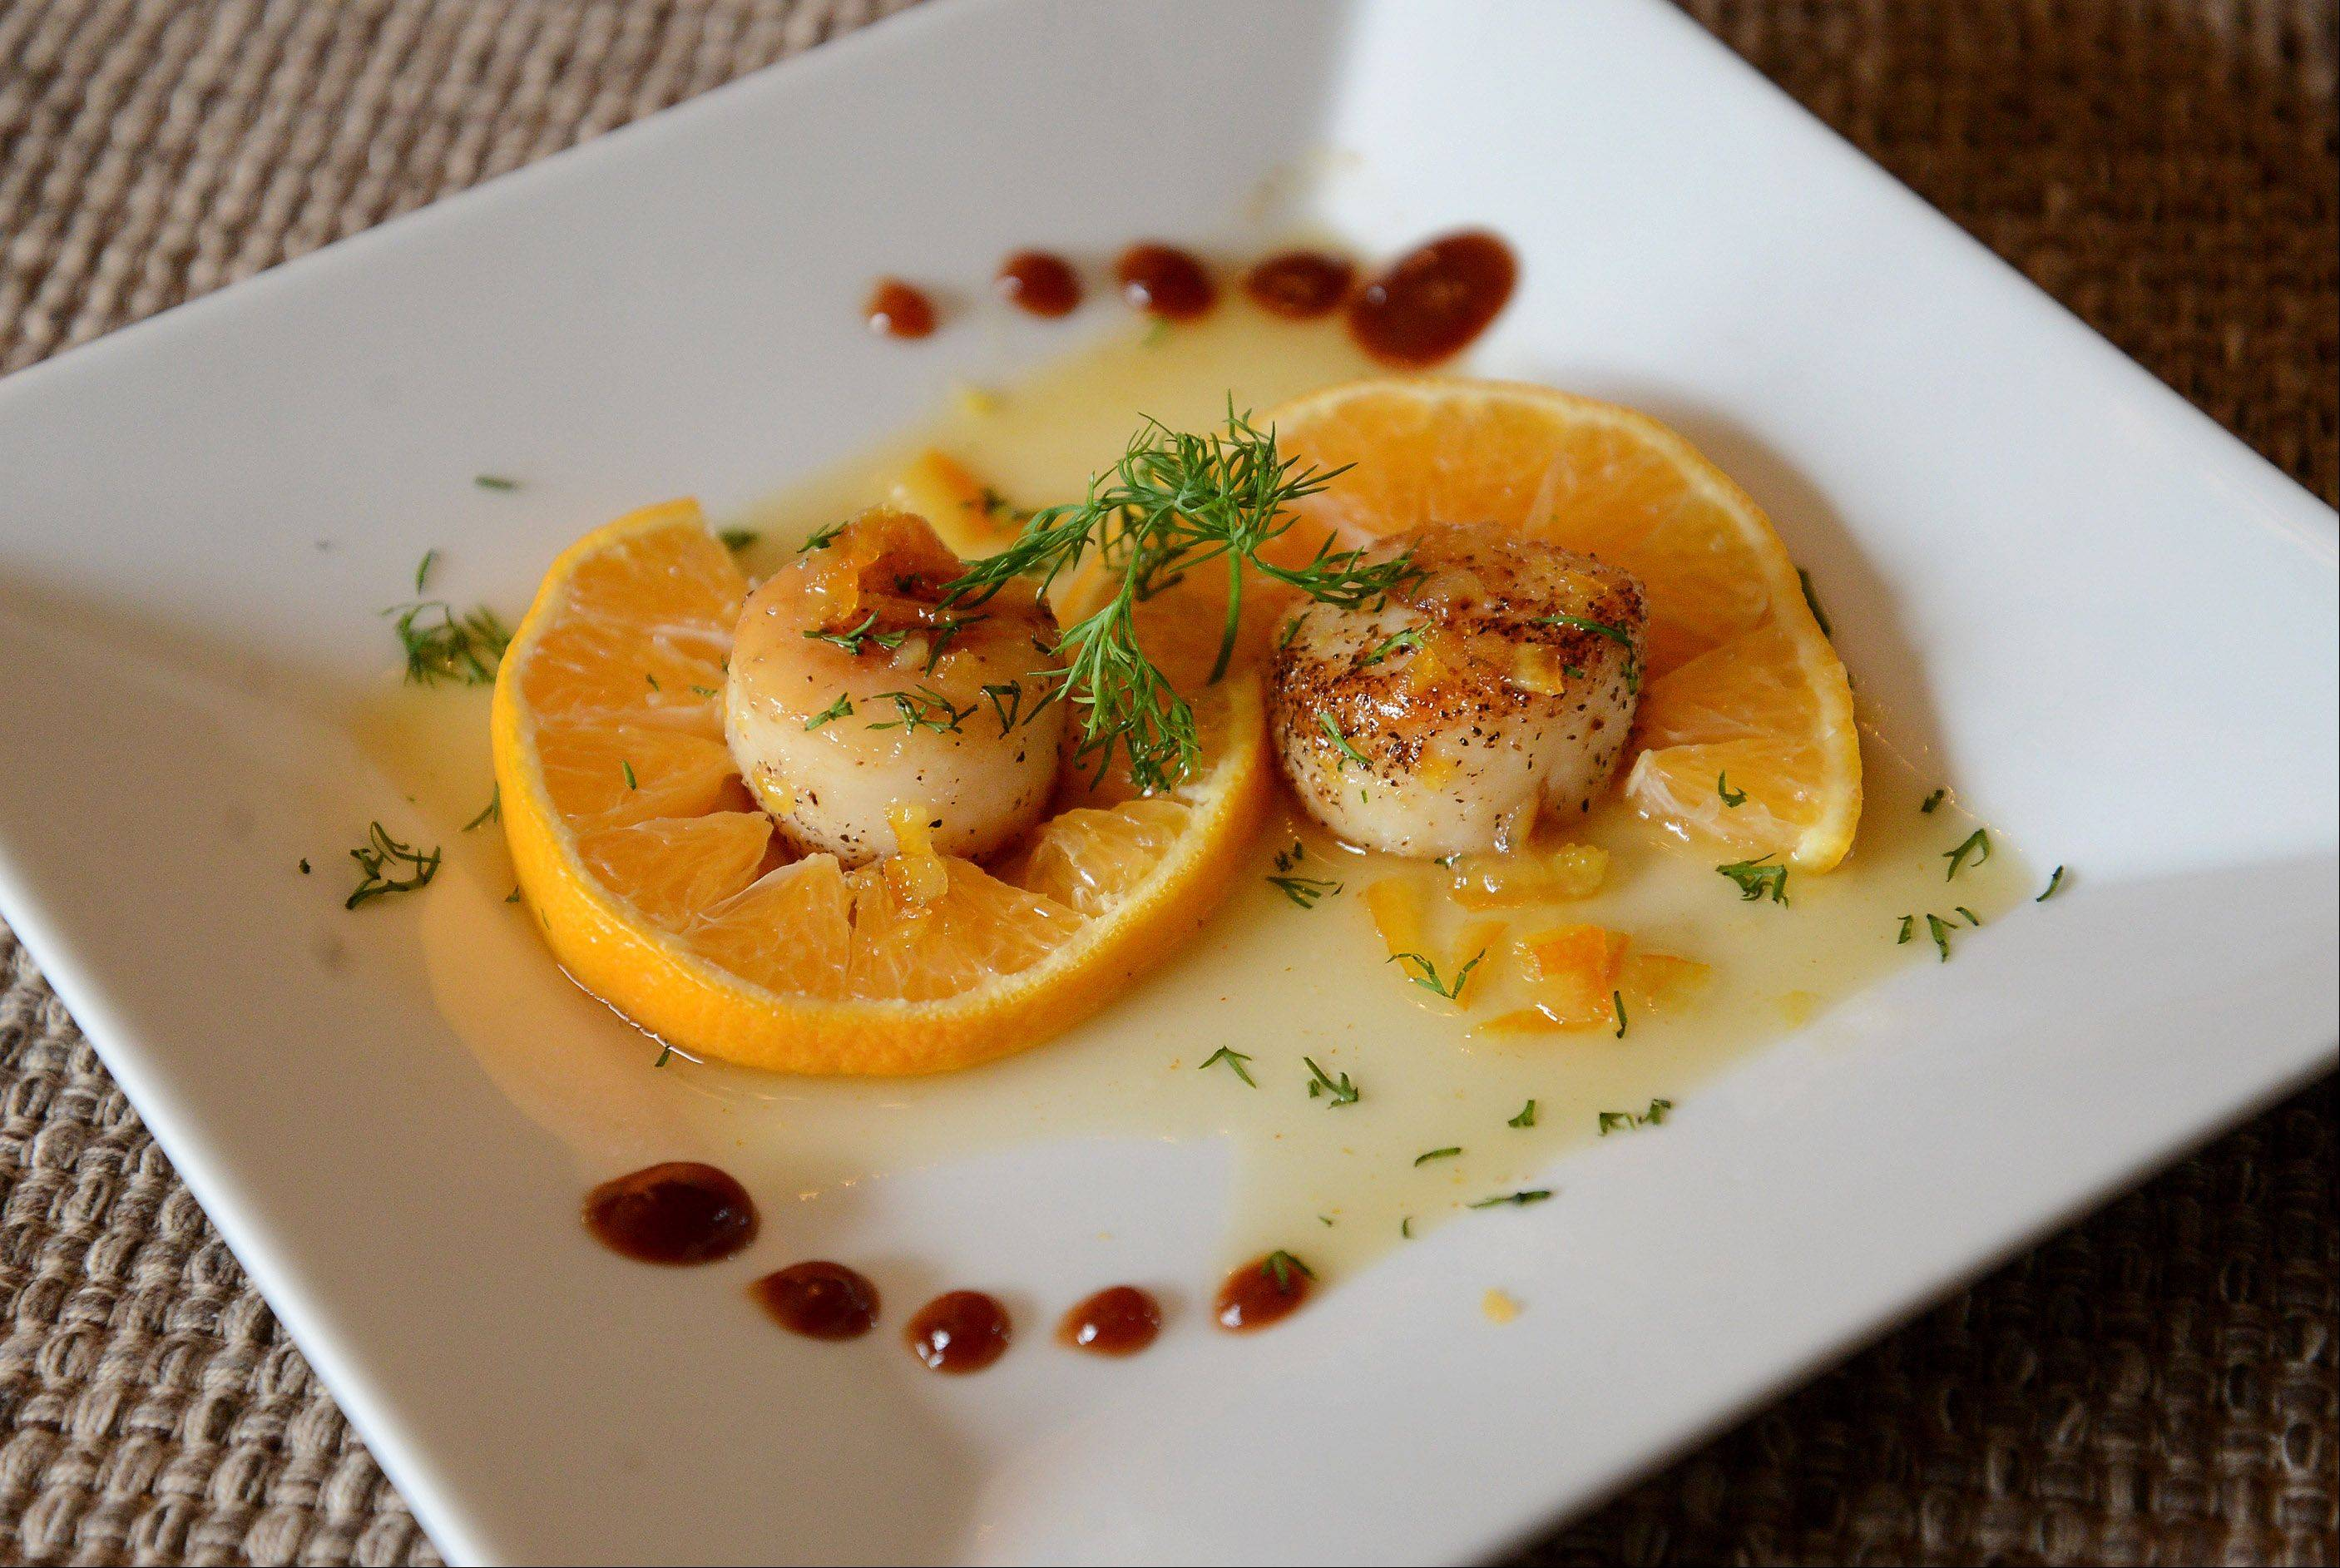 Joe Moninski serves seared scallops on a bed of clementine slices and drizzles them with Grand Marnier sauce.